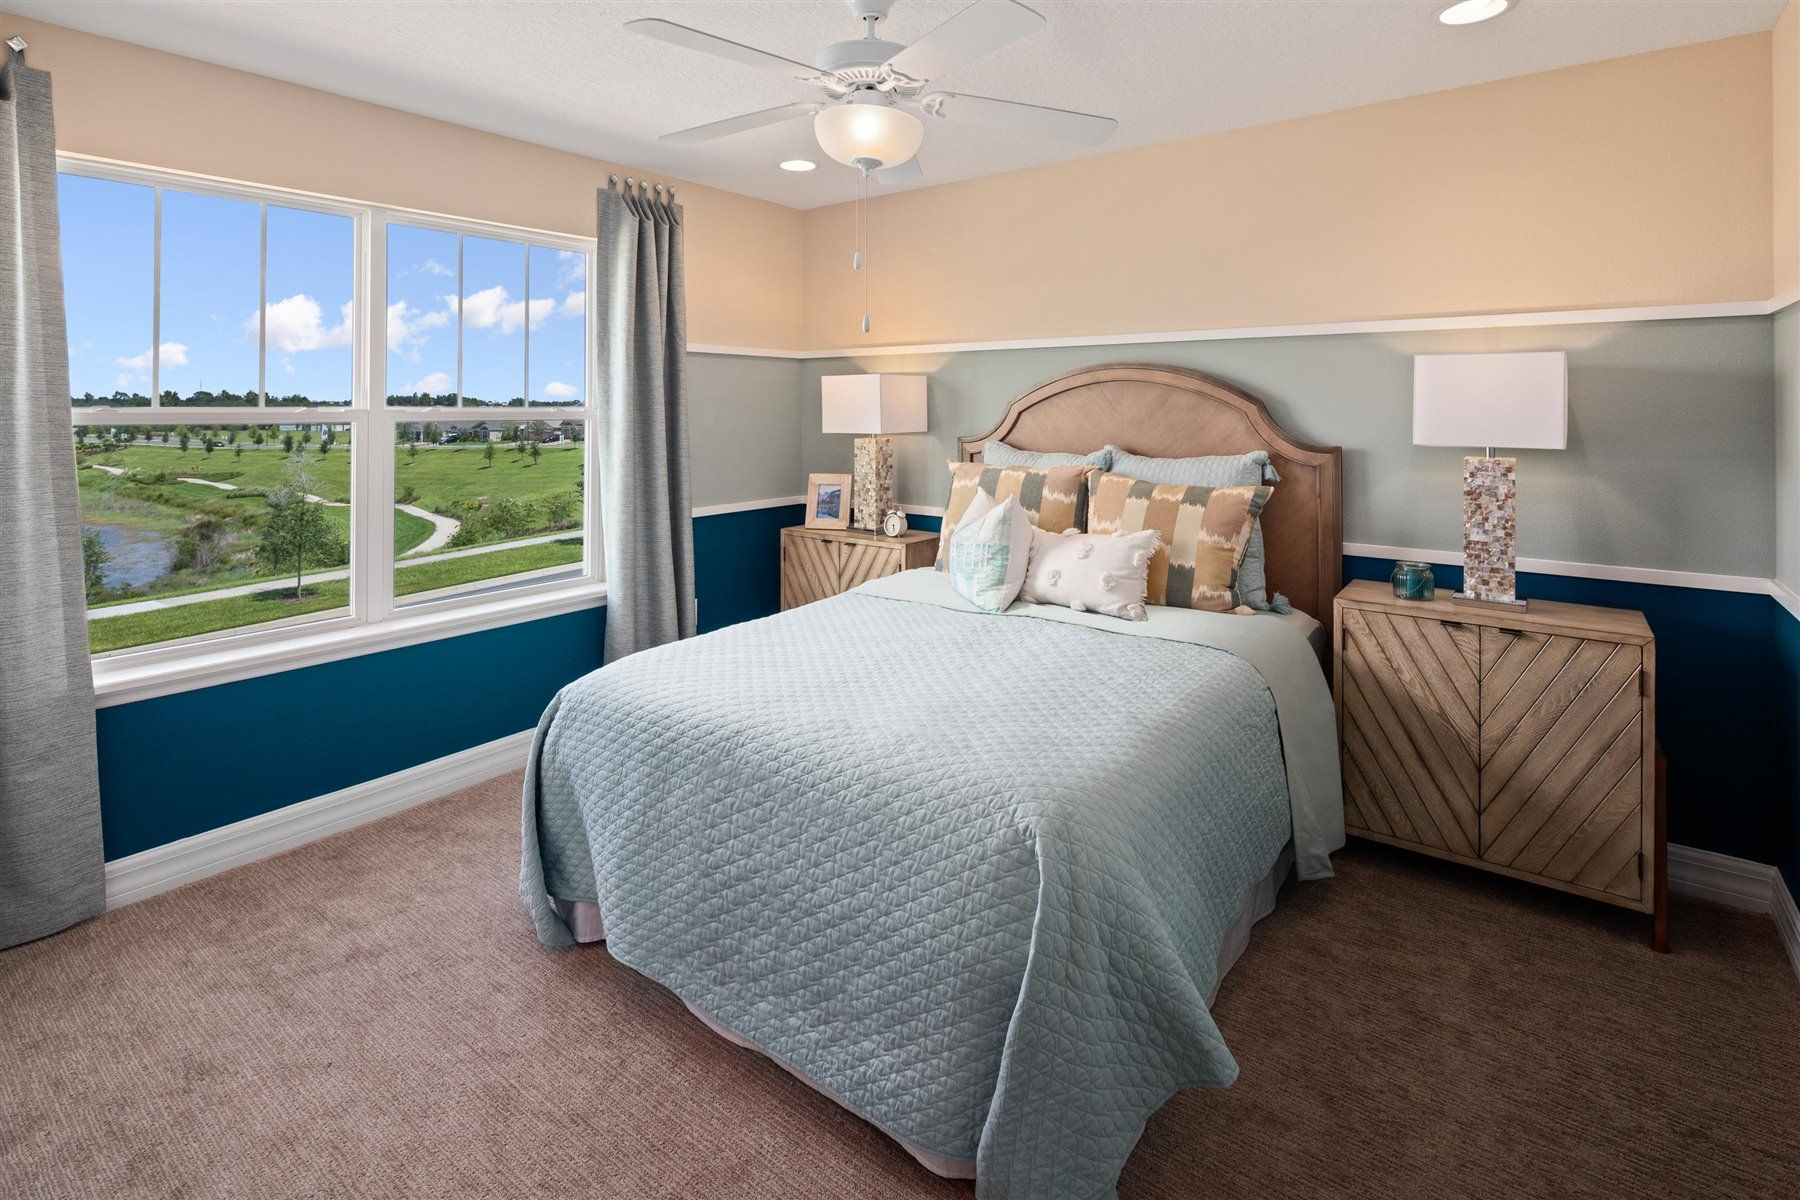 Bedroom featured in the Griffin By Mattamy Homes in Orlando, FL